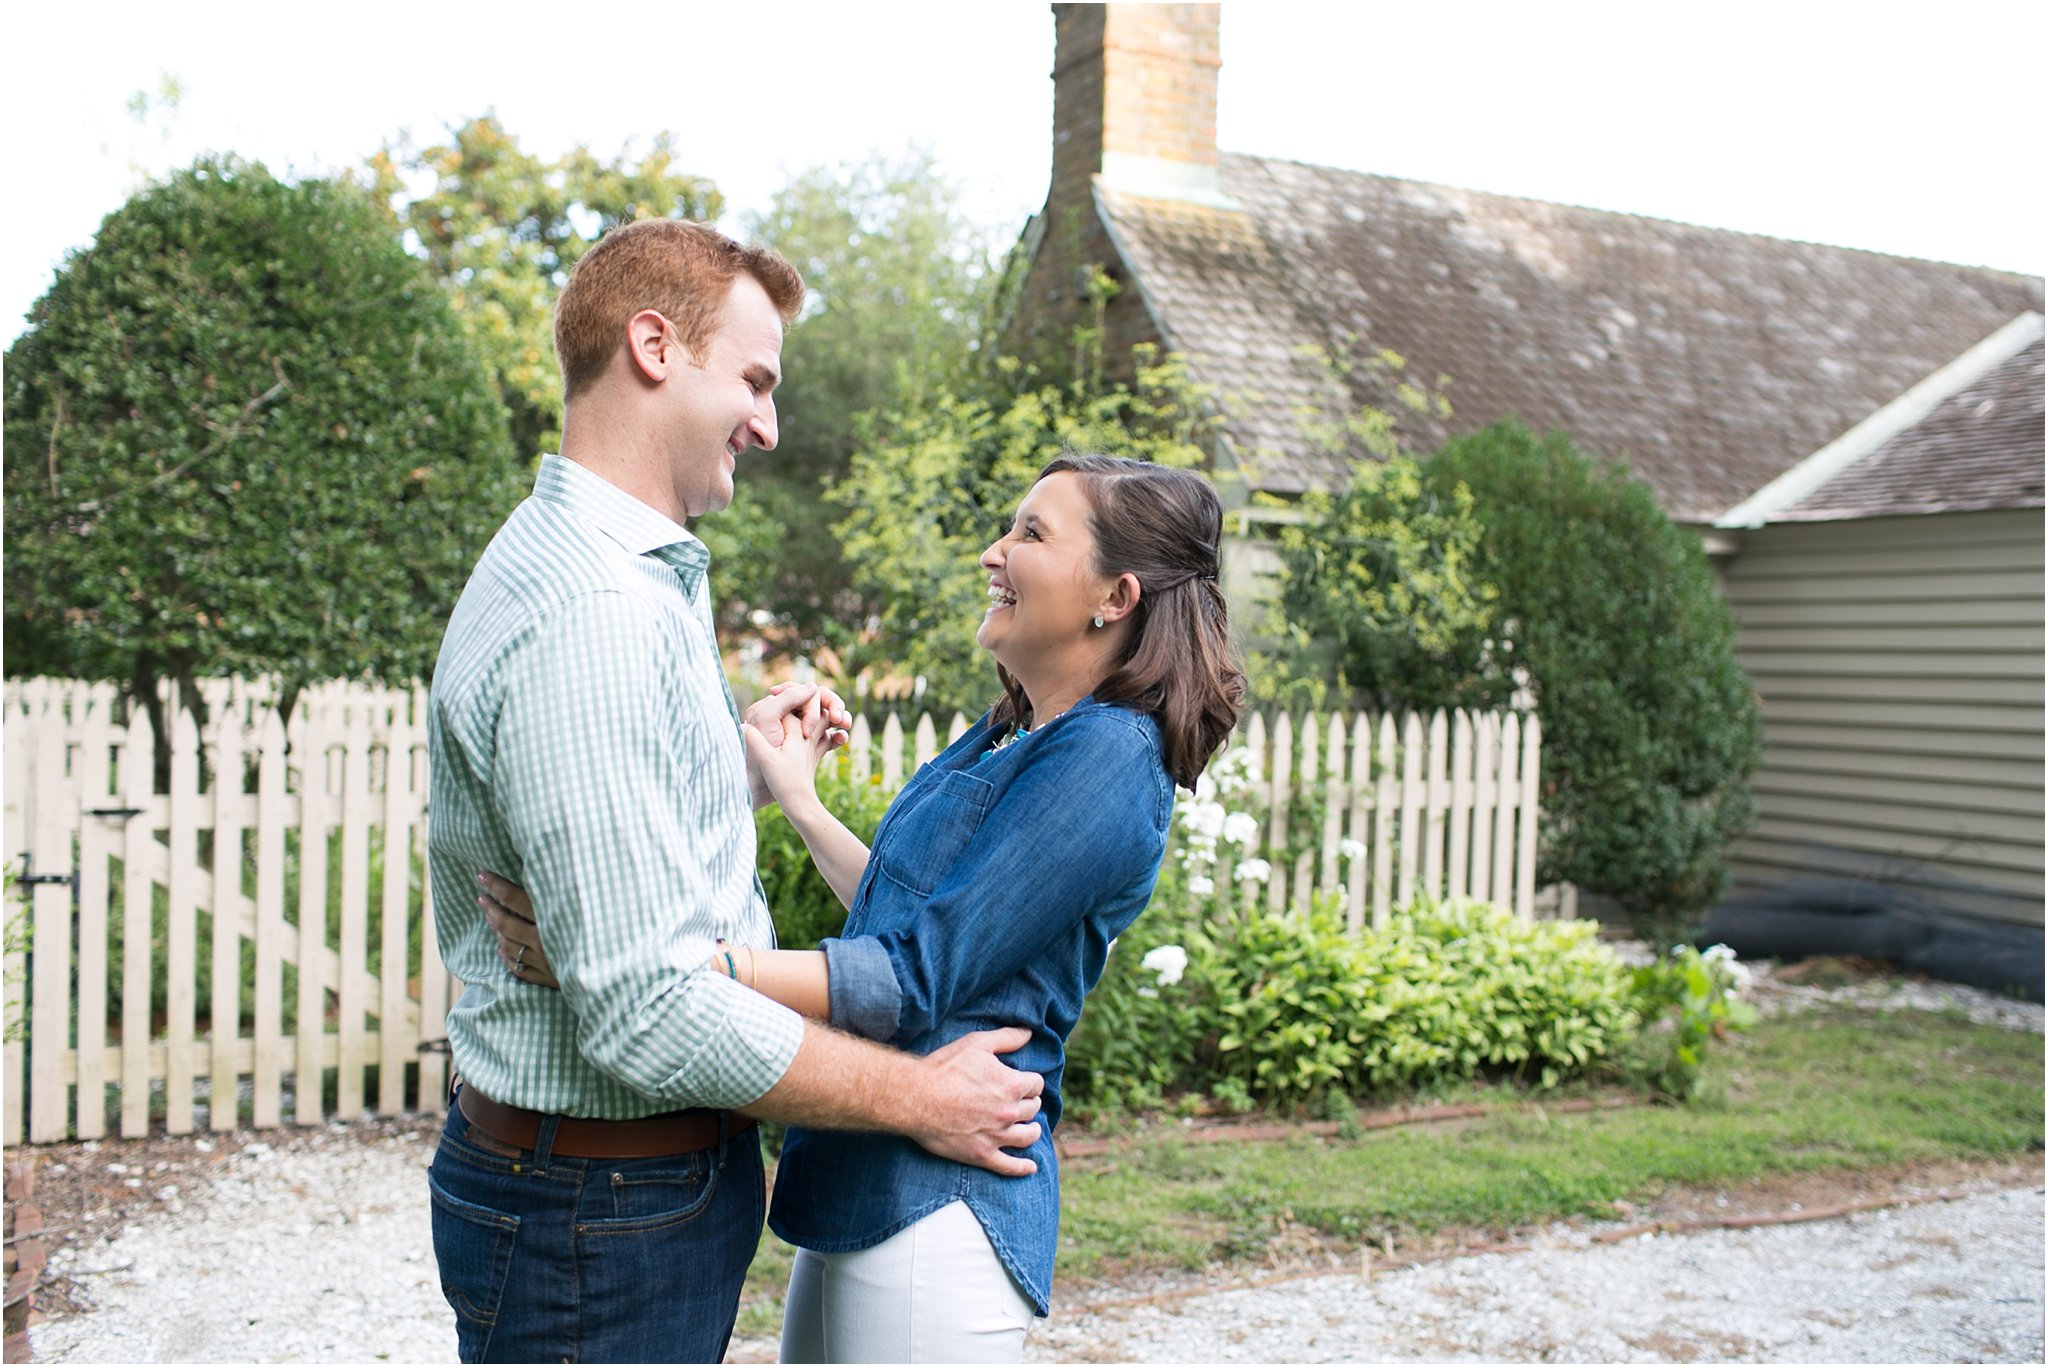 jessica_ryan_photography_virginia_virginia_beach_francis_land_house__portraits_bride_and_groom_beloved_historical_home_engagement_portraits_candid_authentic_engagements_2715